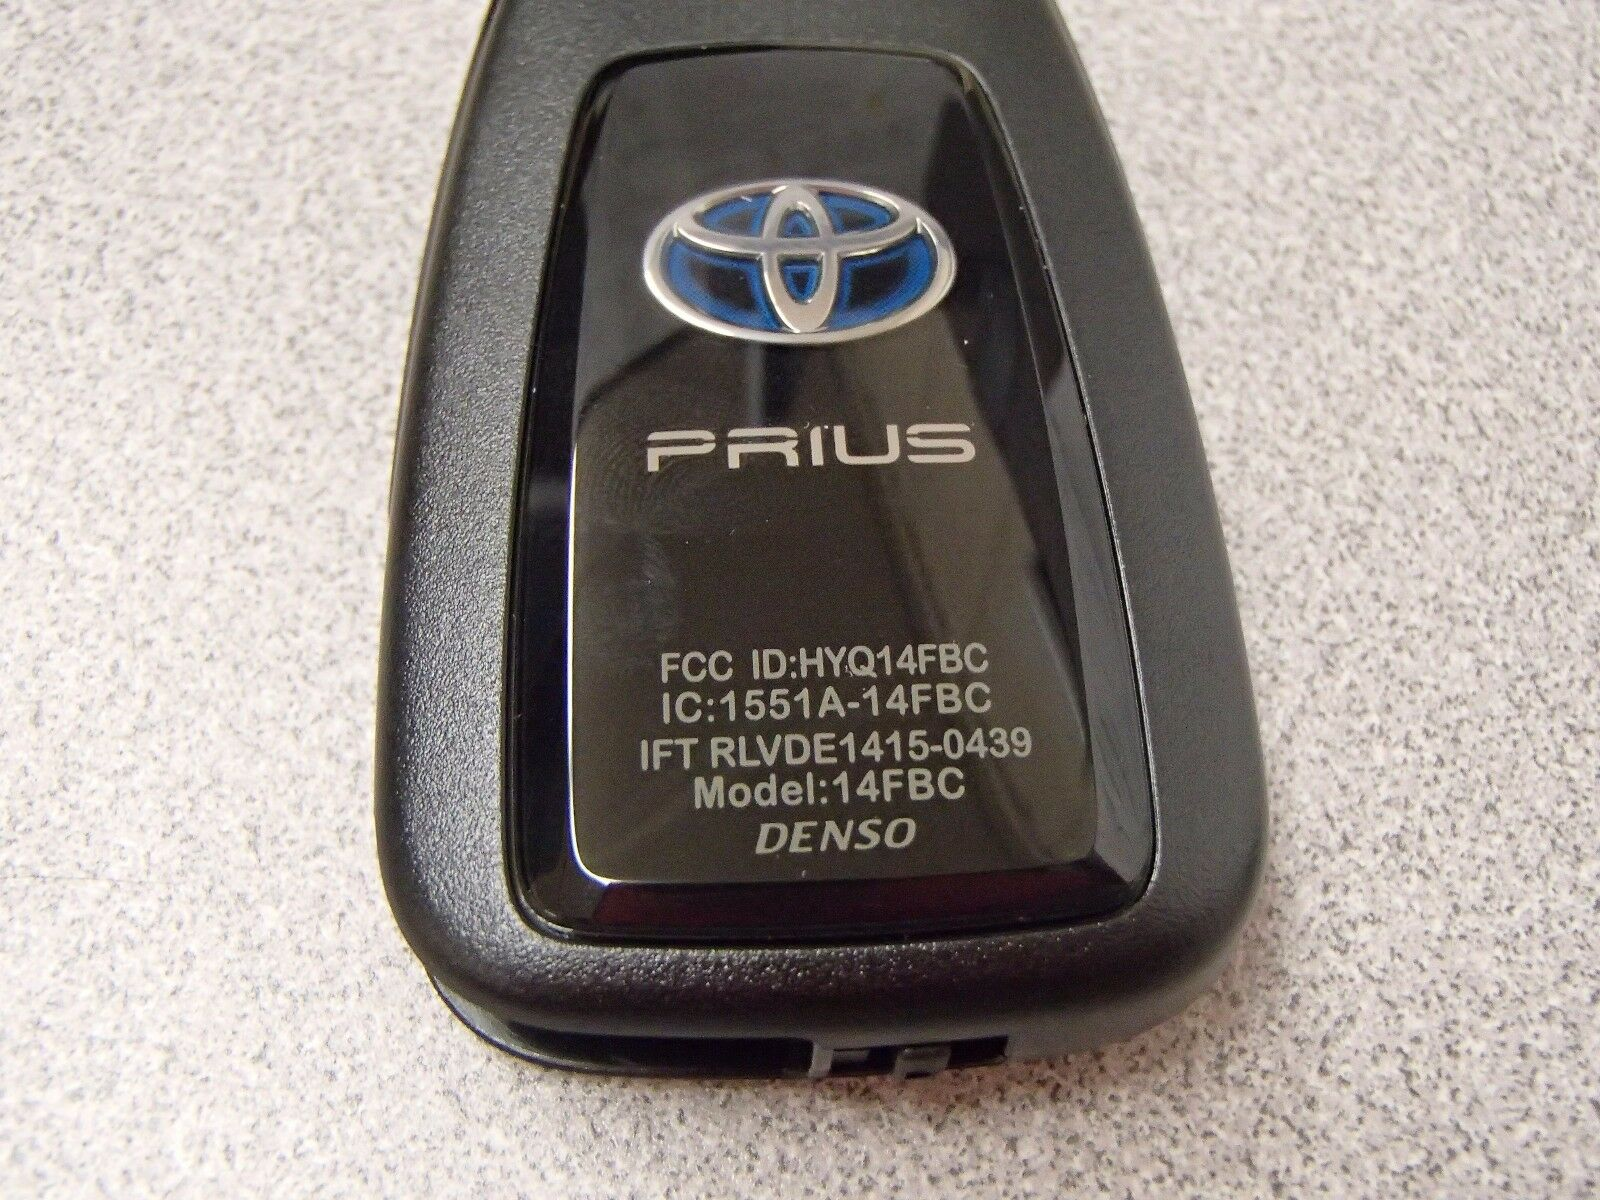 Toyota Oem Hyq14fbc 2016 Prius Keyless Entry Smart Key Remote Fob 20072008 Infiniti G35 Dealer Program Norton Secured Powered By Verisign